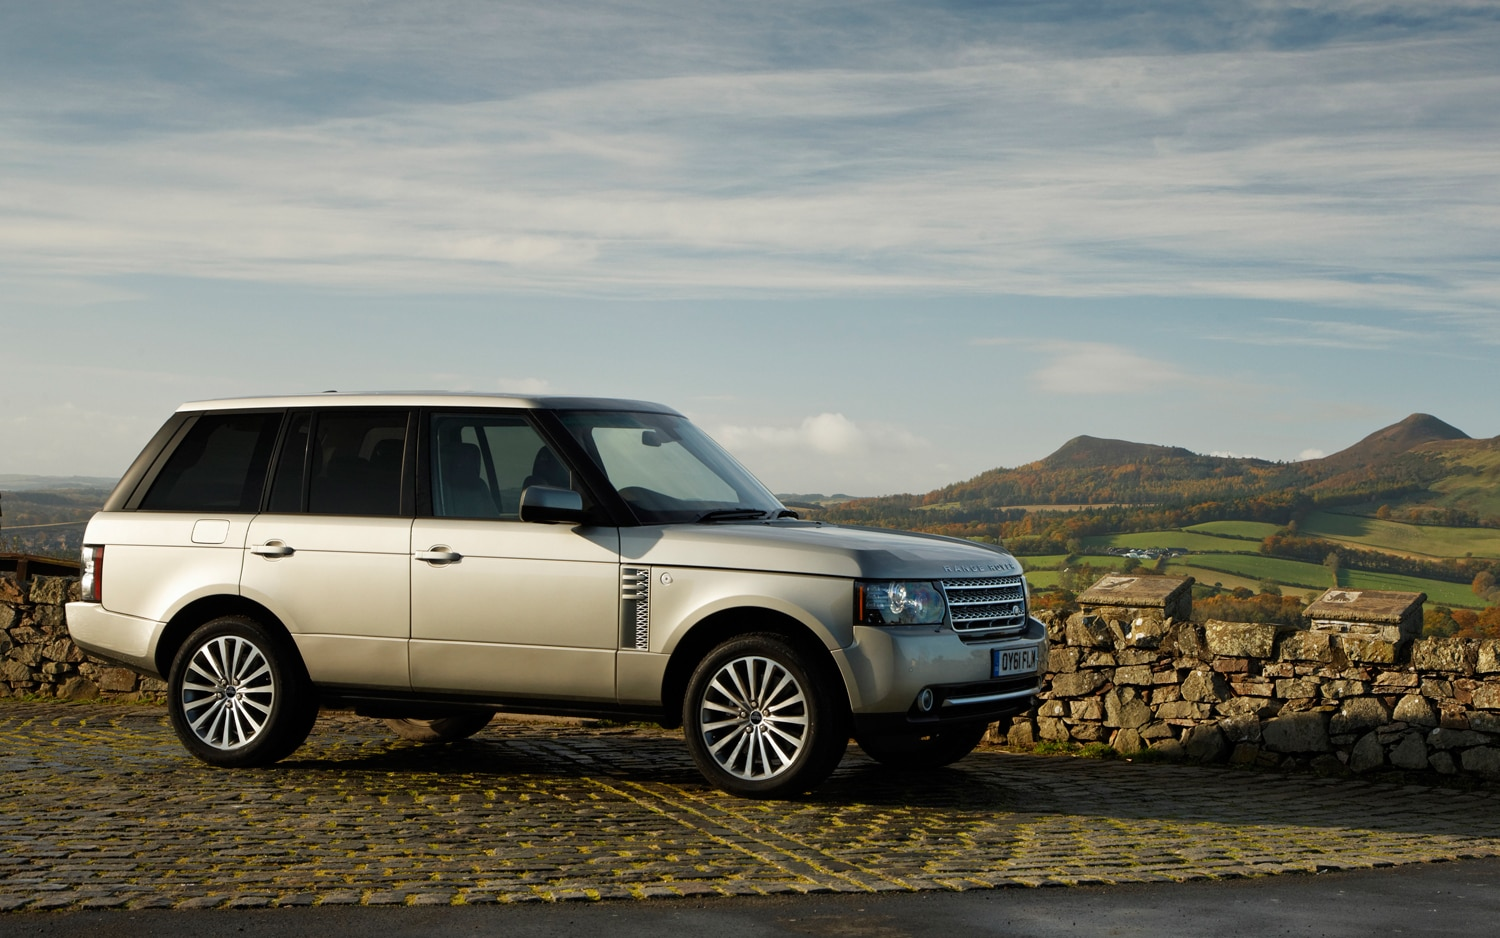 Land rover range rover photo - 8